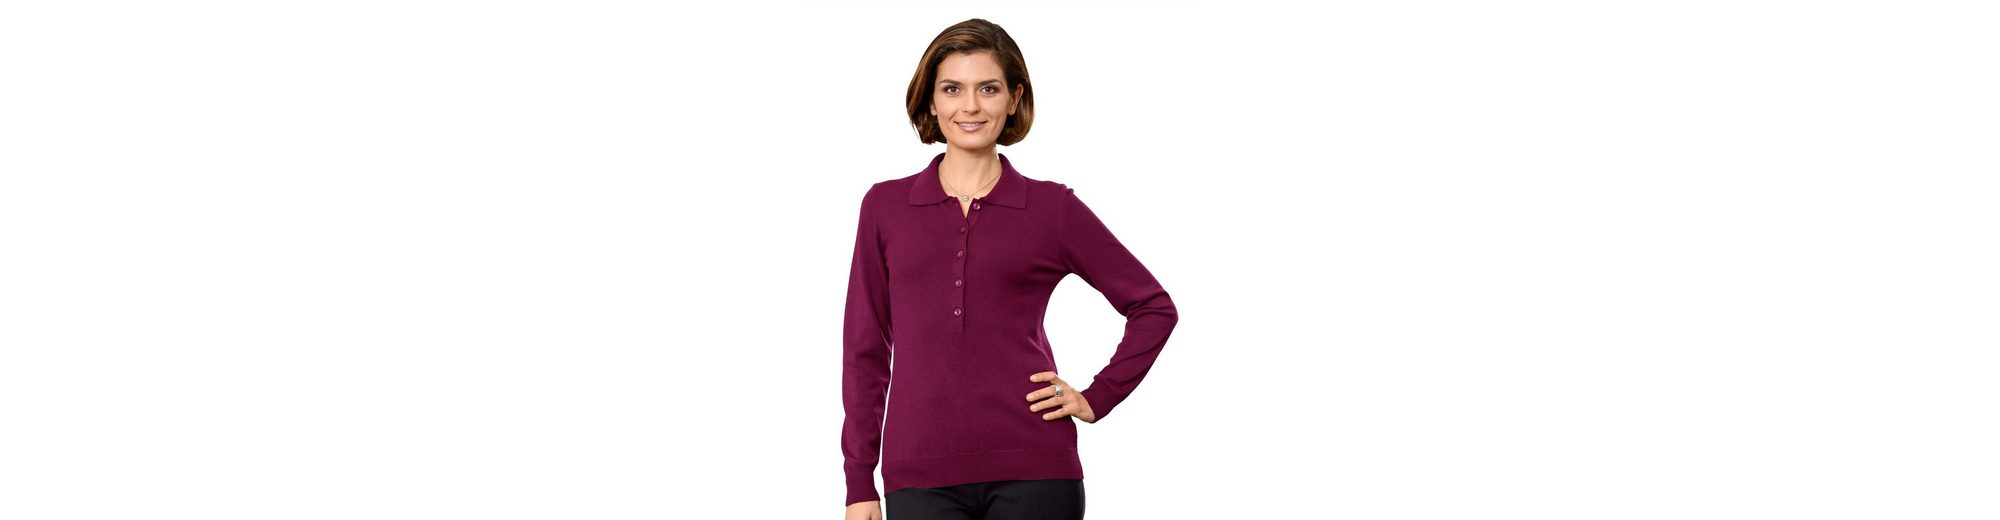 Mona Pullover in Traumhaft-Qualit盲t